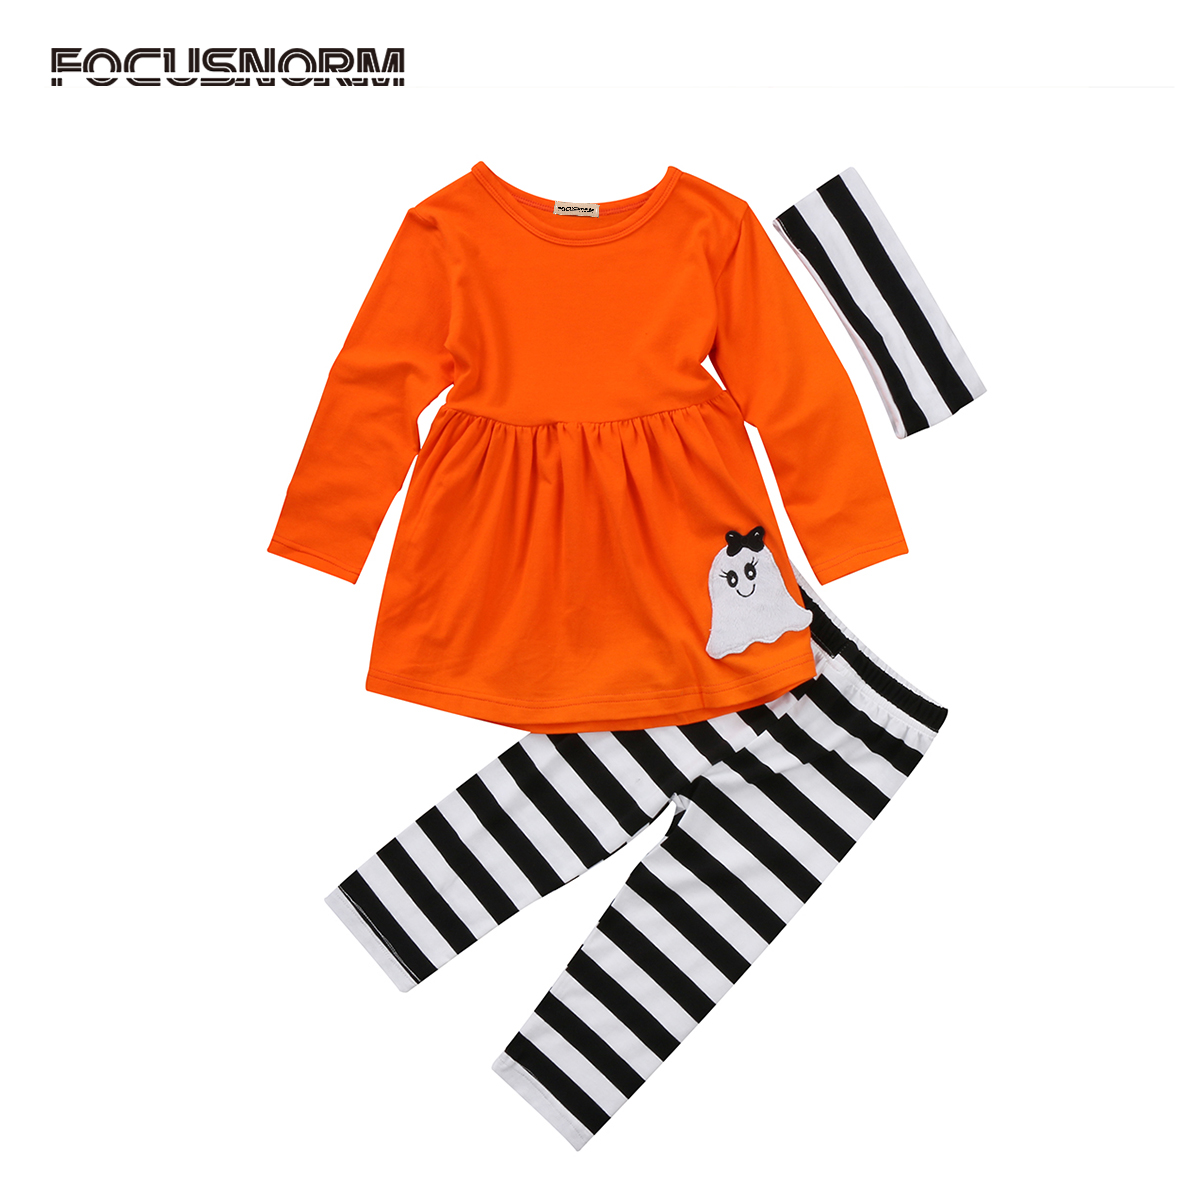 3pcs Toddler Kids Baby Girl Ghost Print Top+Striped Long Pant+Headband Halloween Outfits Clothes Costumes